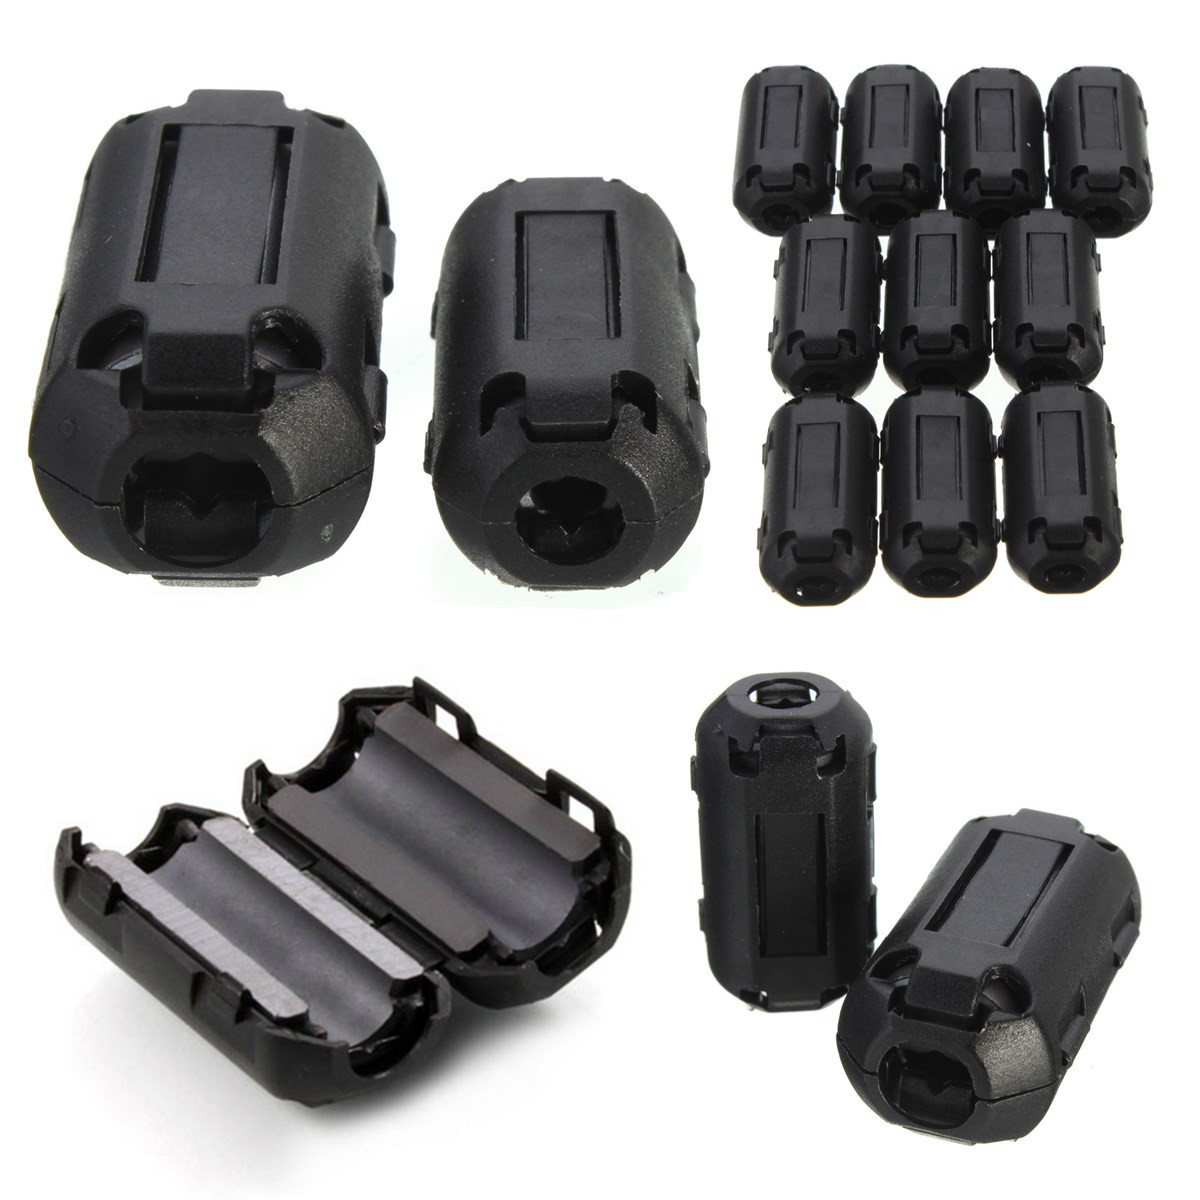 10Pcs Black EMI RFI Noise Ferrite Core Filter Cutting